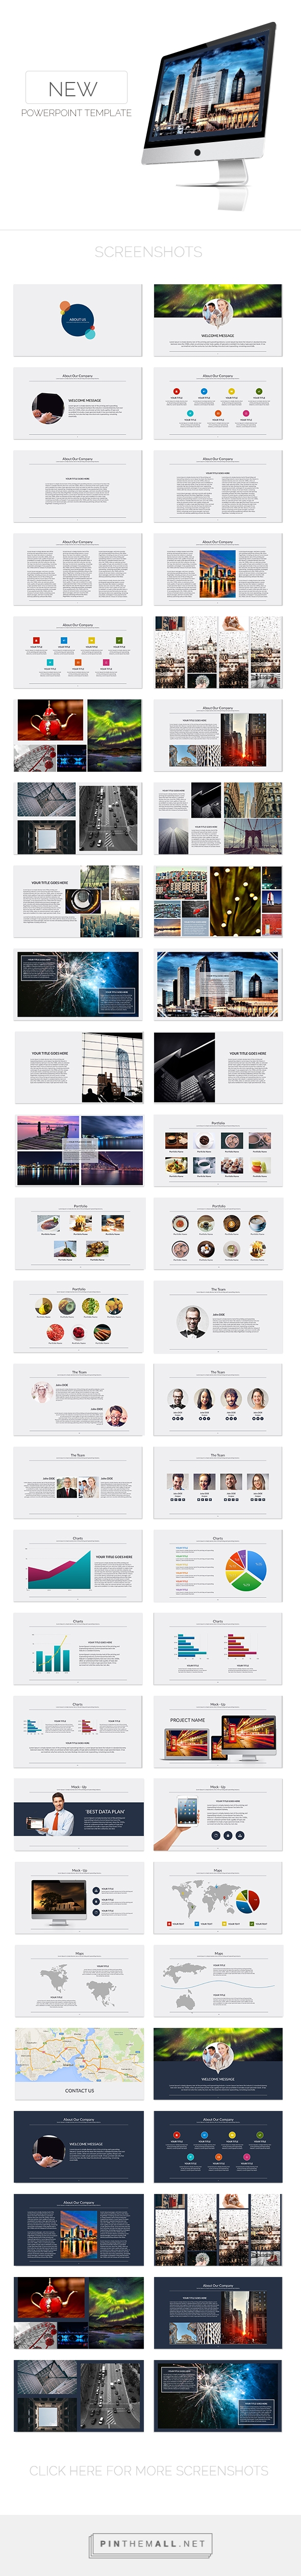 PowerPoint Presentations  CommNet